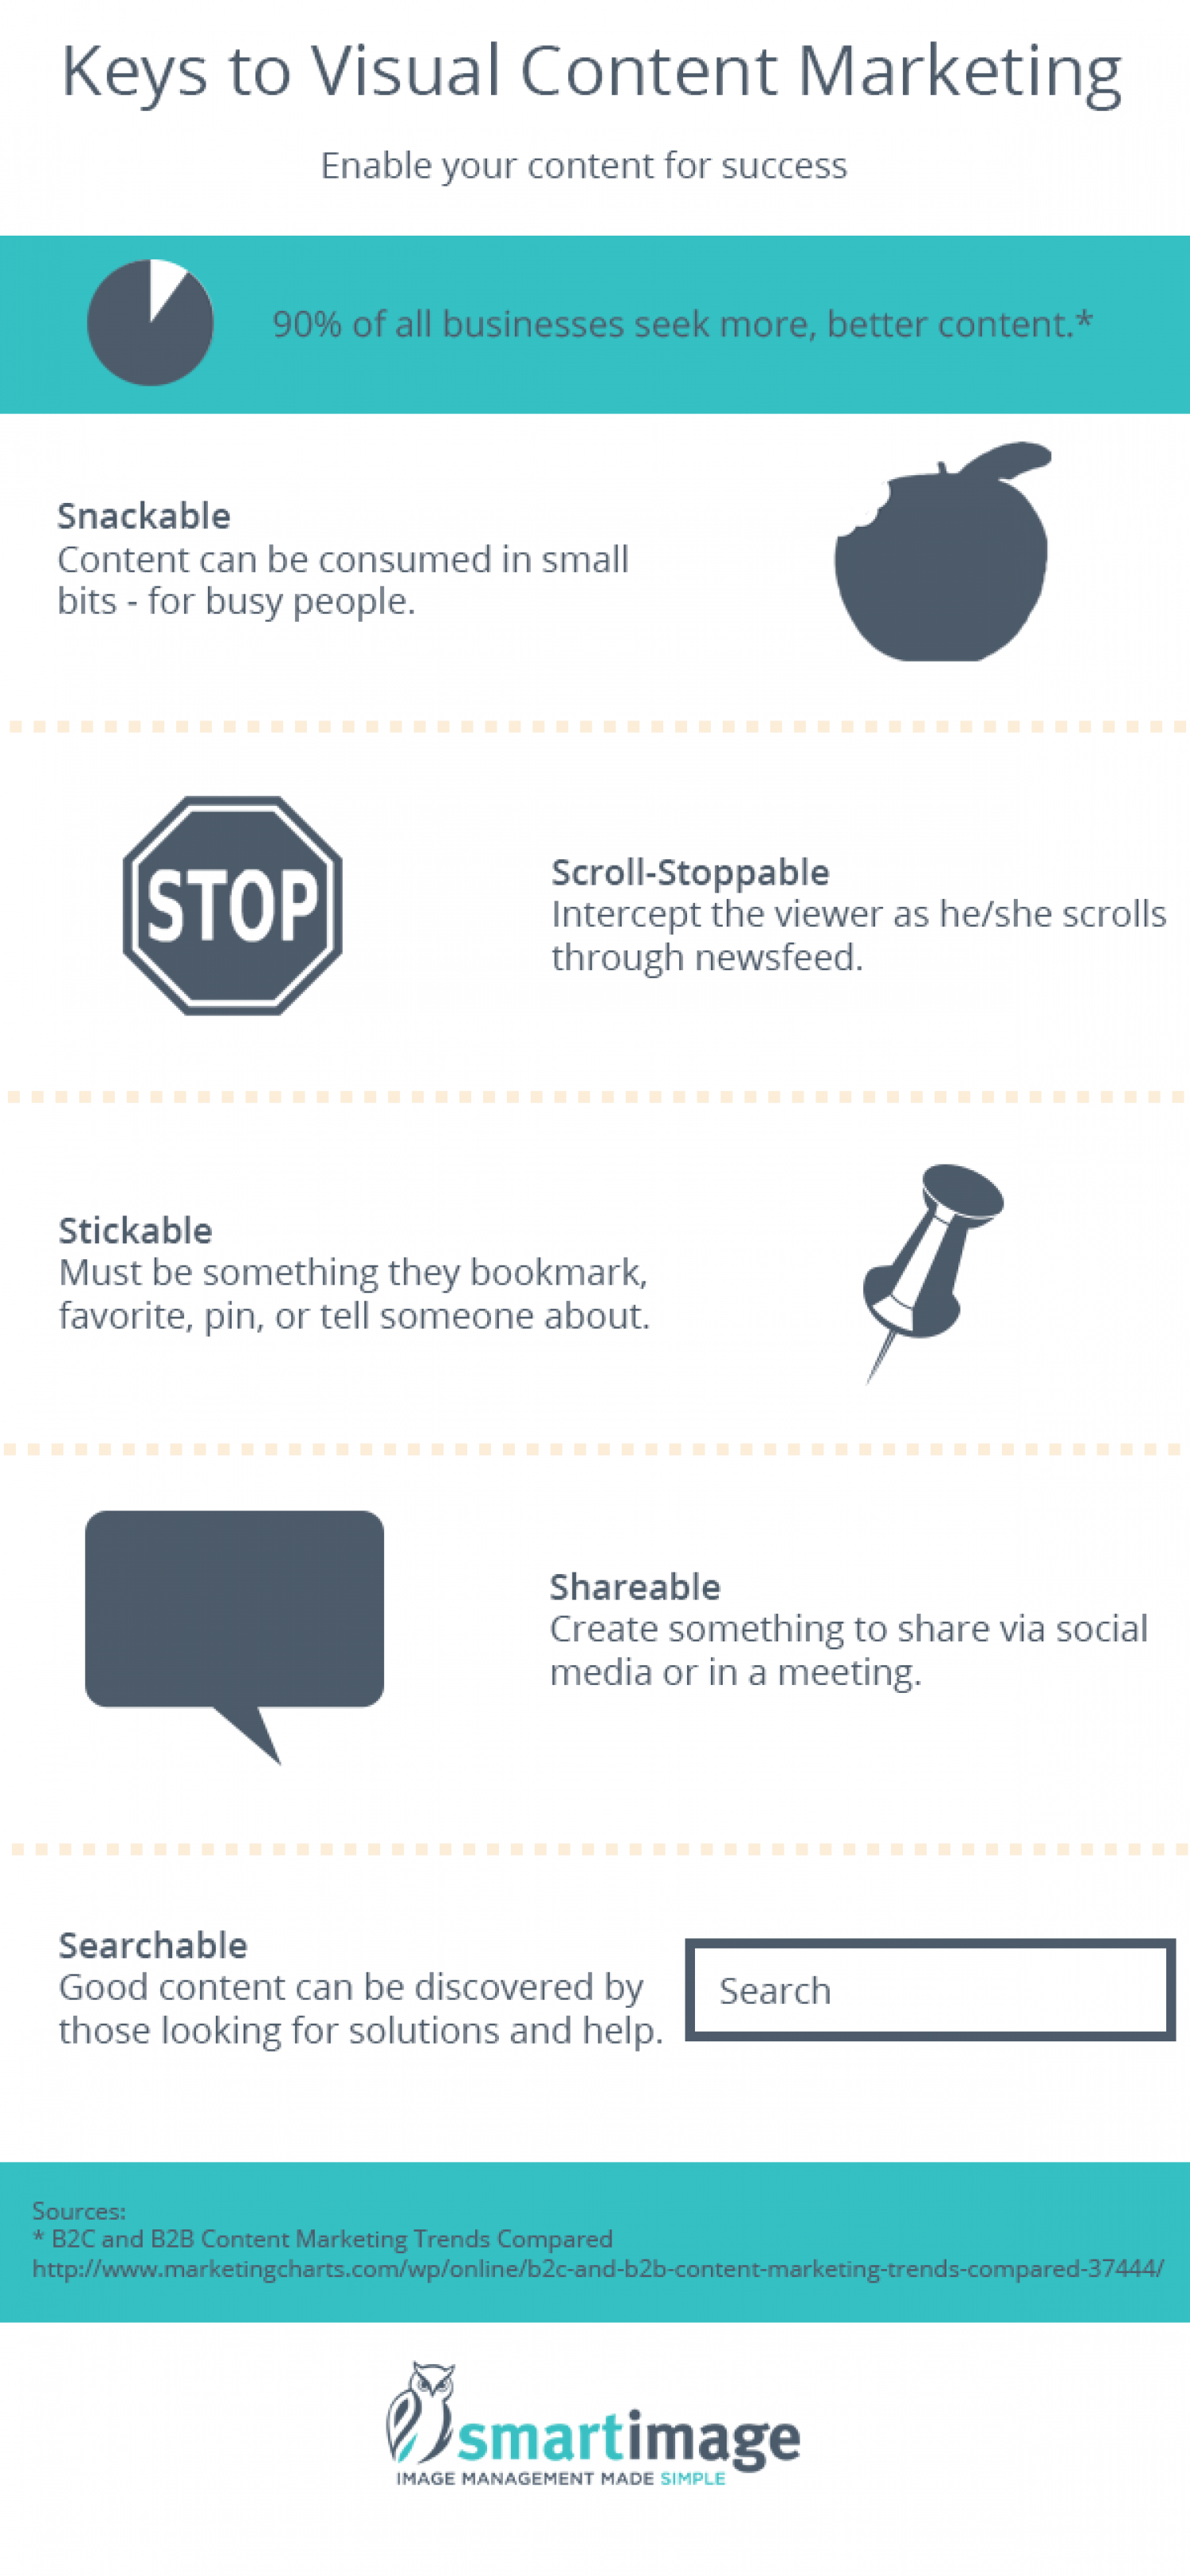 Keys to Visual Content Marketing Infographic